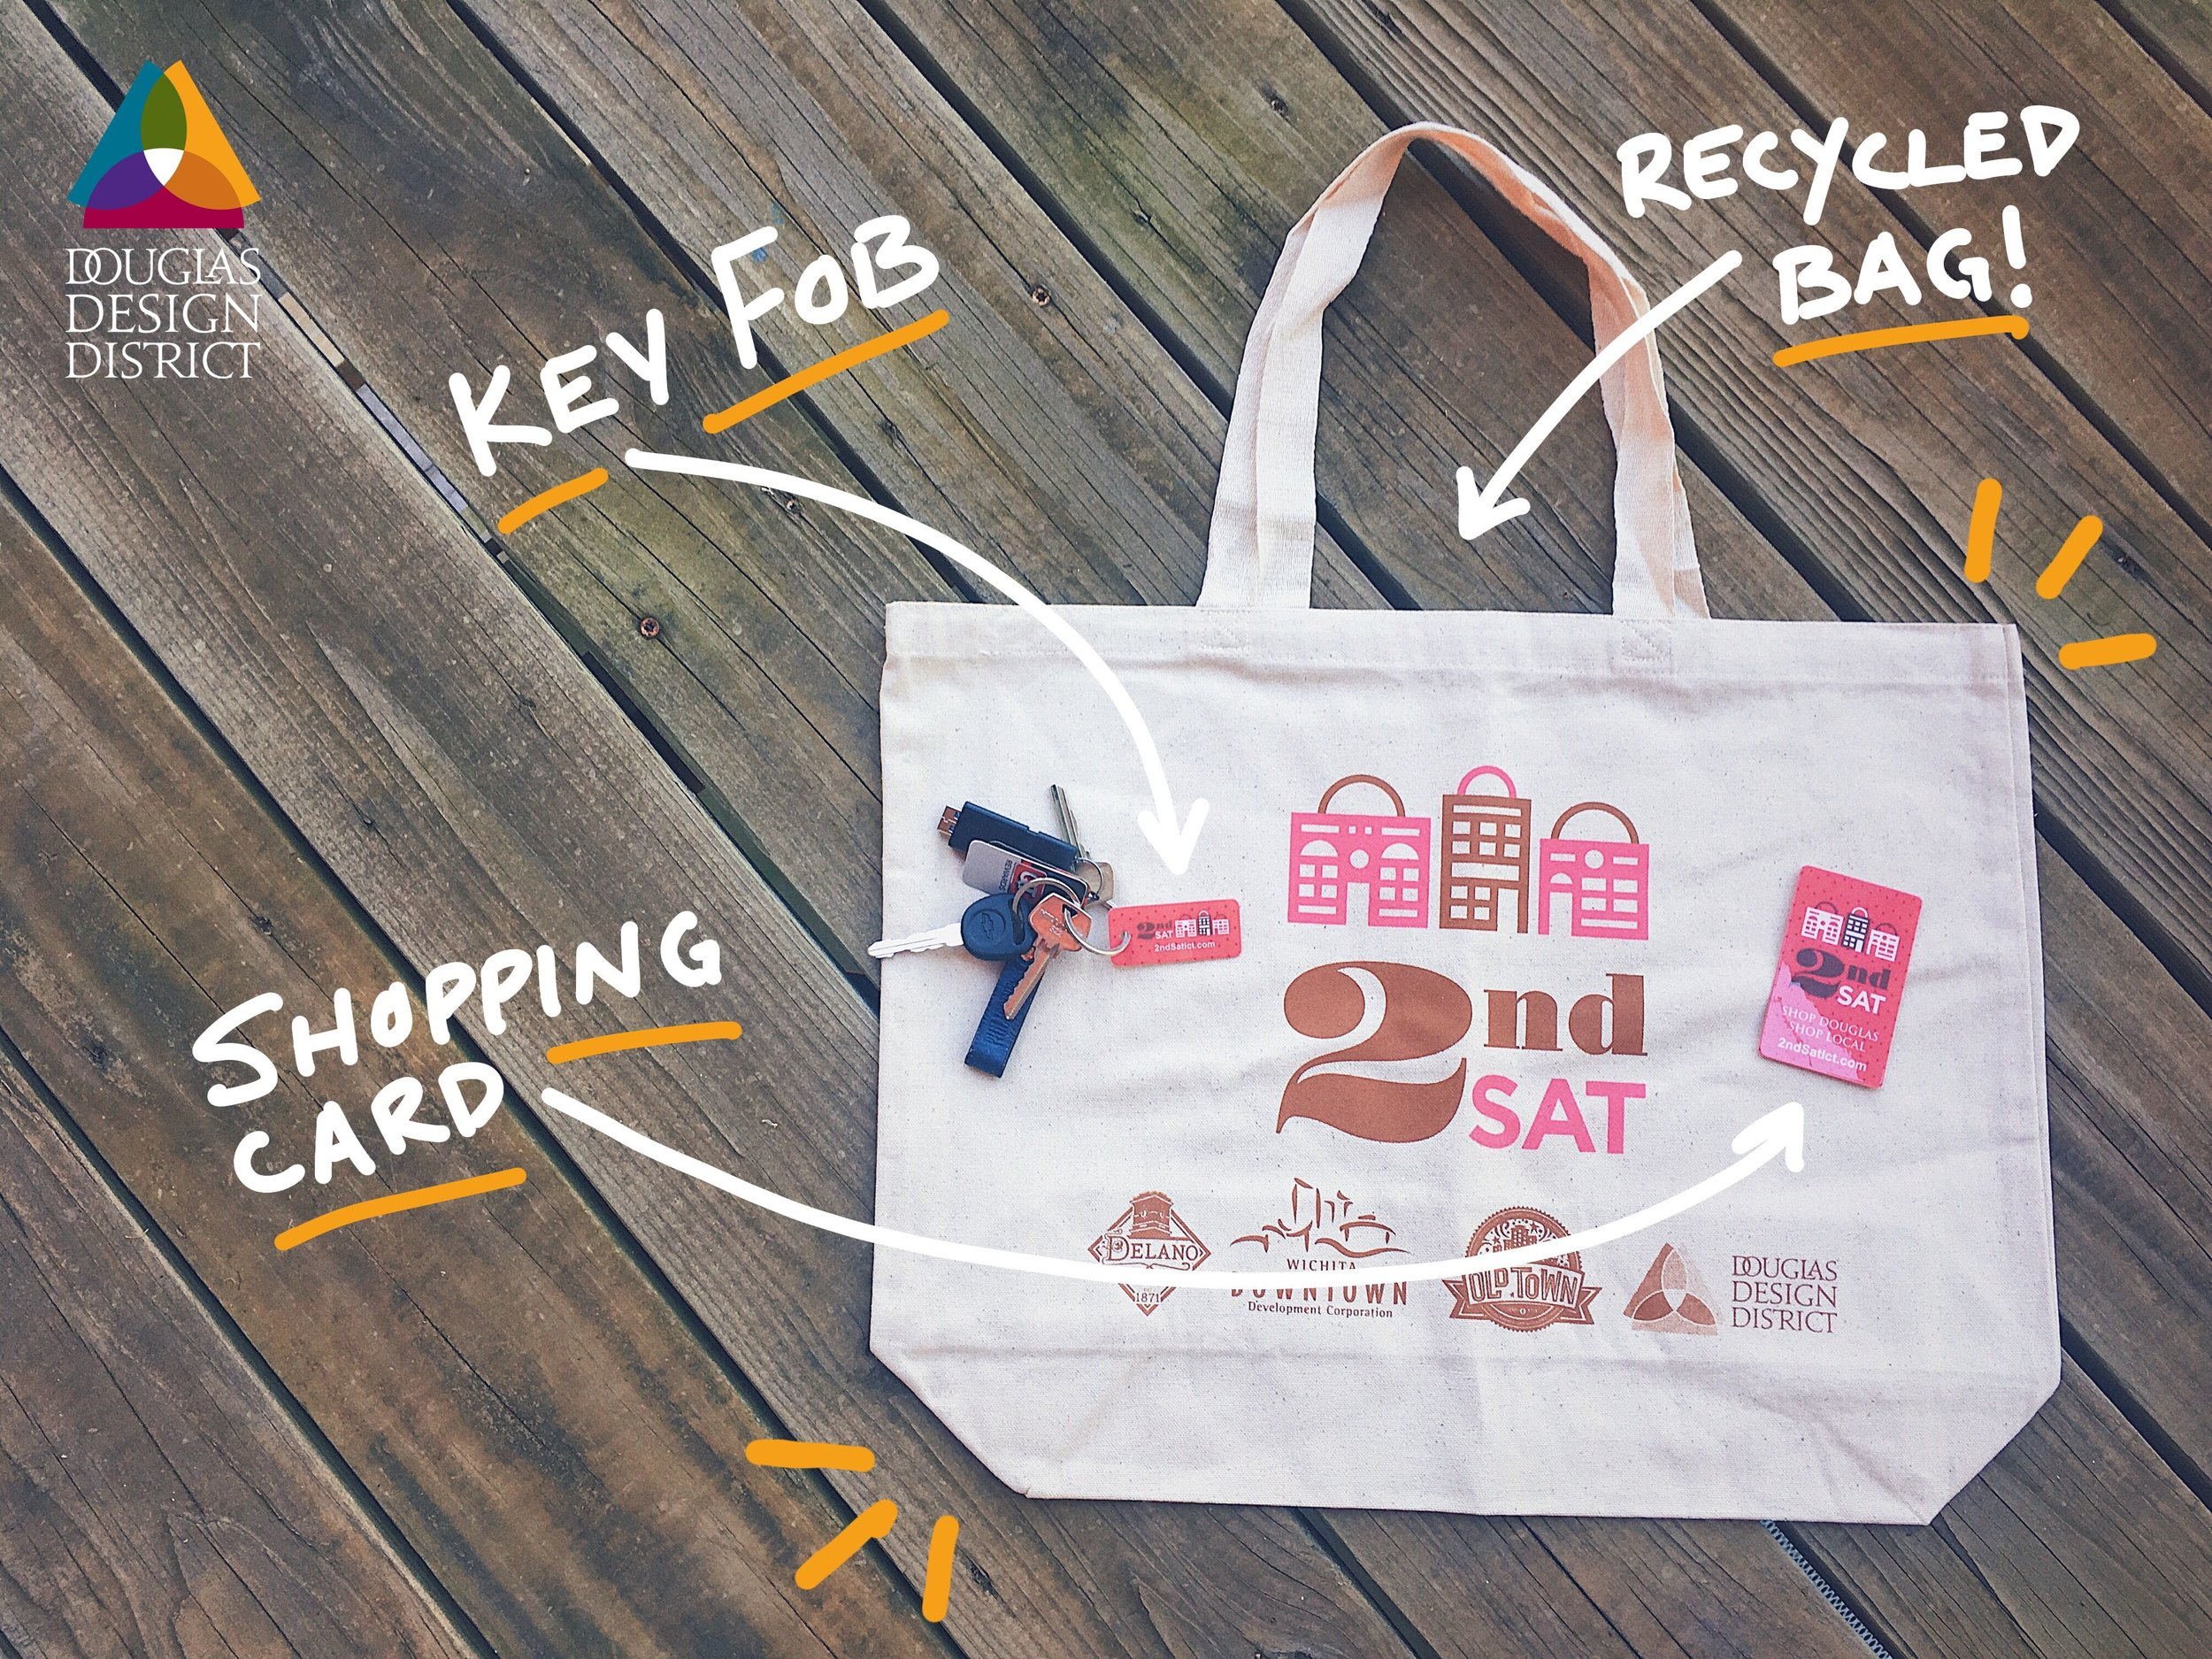 Your $5 2nd Saturday shopping kit comes with a re-usable, recycled bag, a 2nd Saturday Key Fob, and Shopping Card. Now you're ready to go!